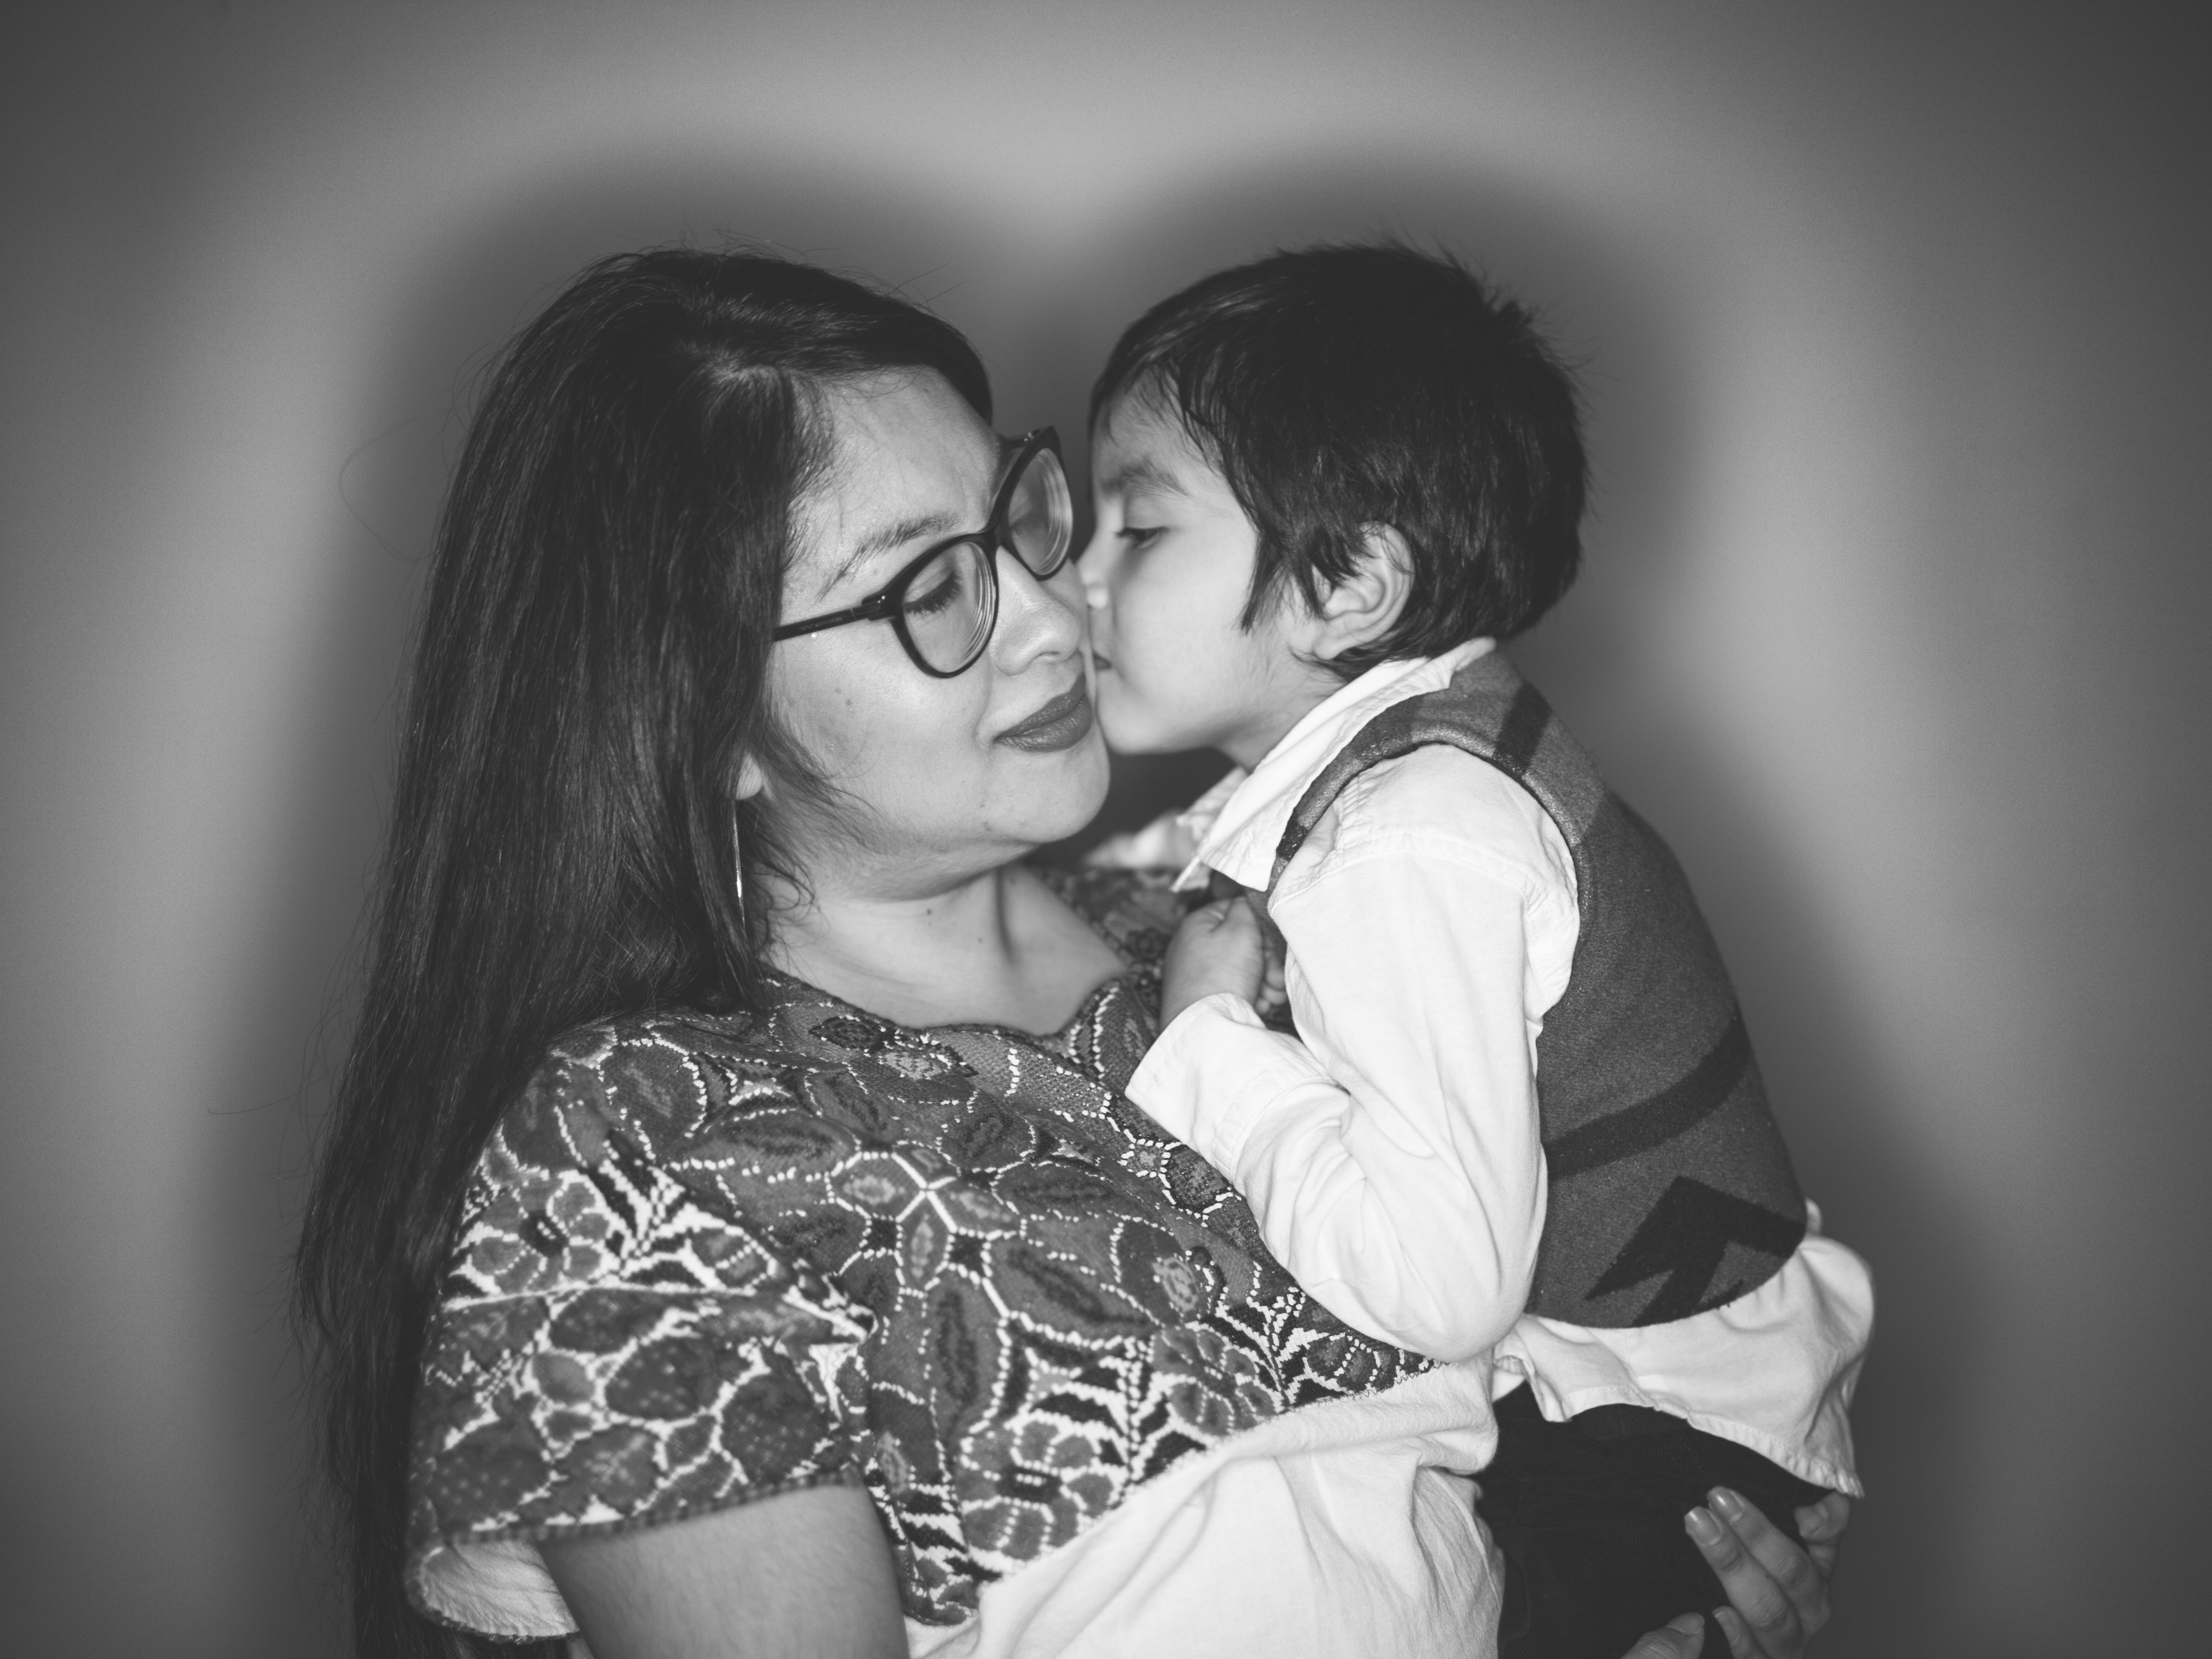 A black-and-white photograph of a woman with her eyes closed, carrying a child in her arms. The child is lovingly kissing her cheek.